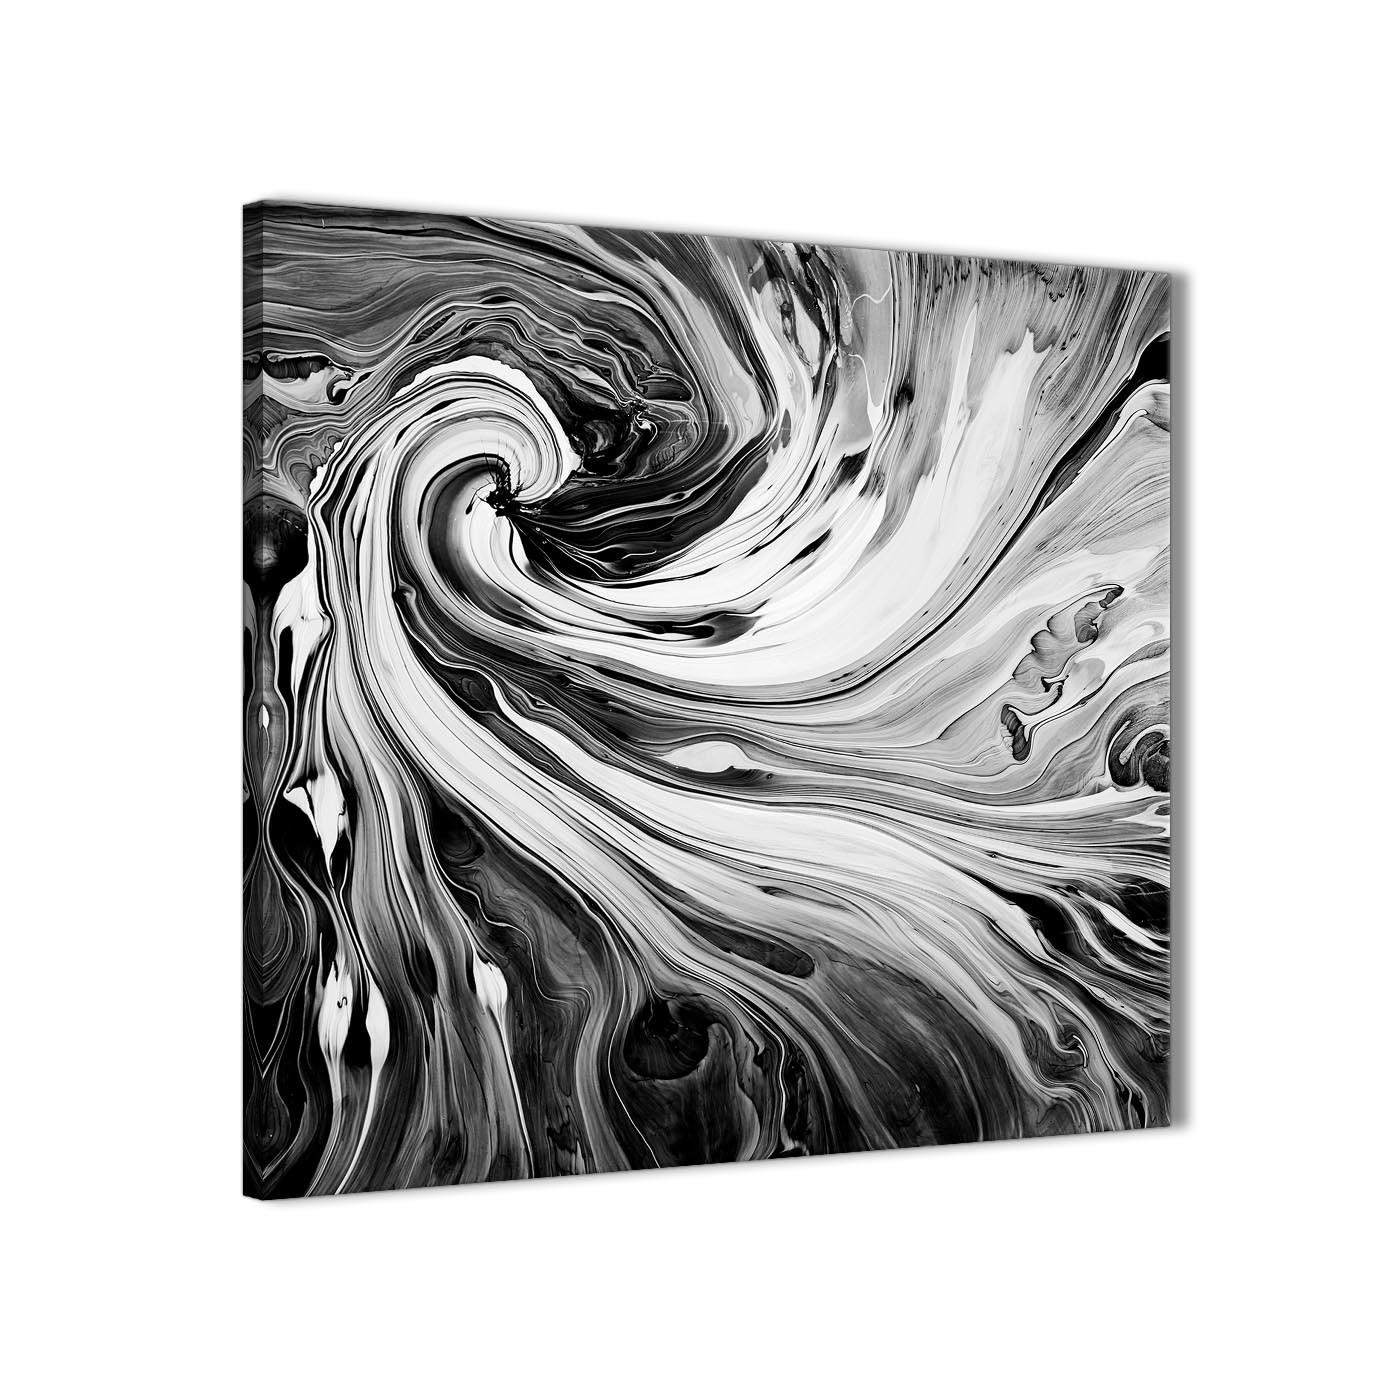 black white grey swirls modern abstract canvas wall art 49cm square 1s354s. Black Bedroom Furniture Sets. Home Design Ideas